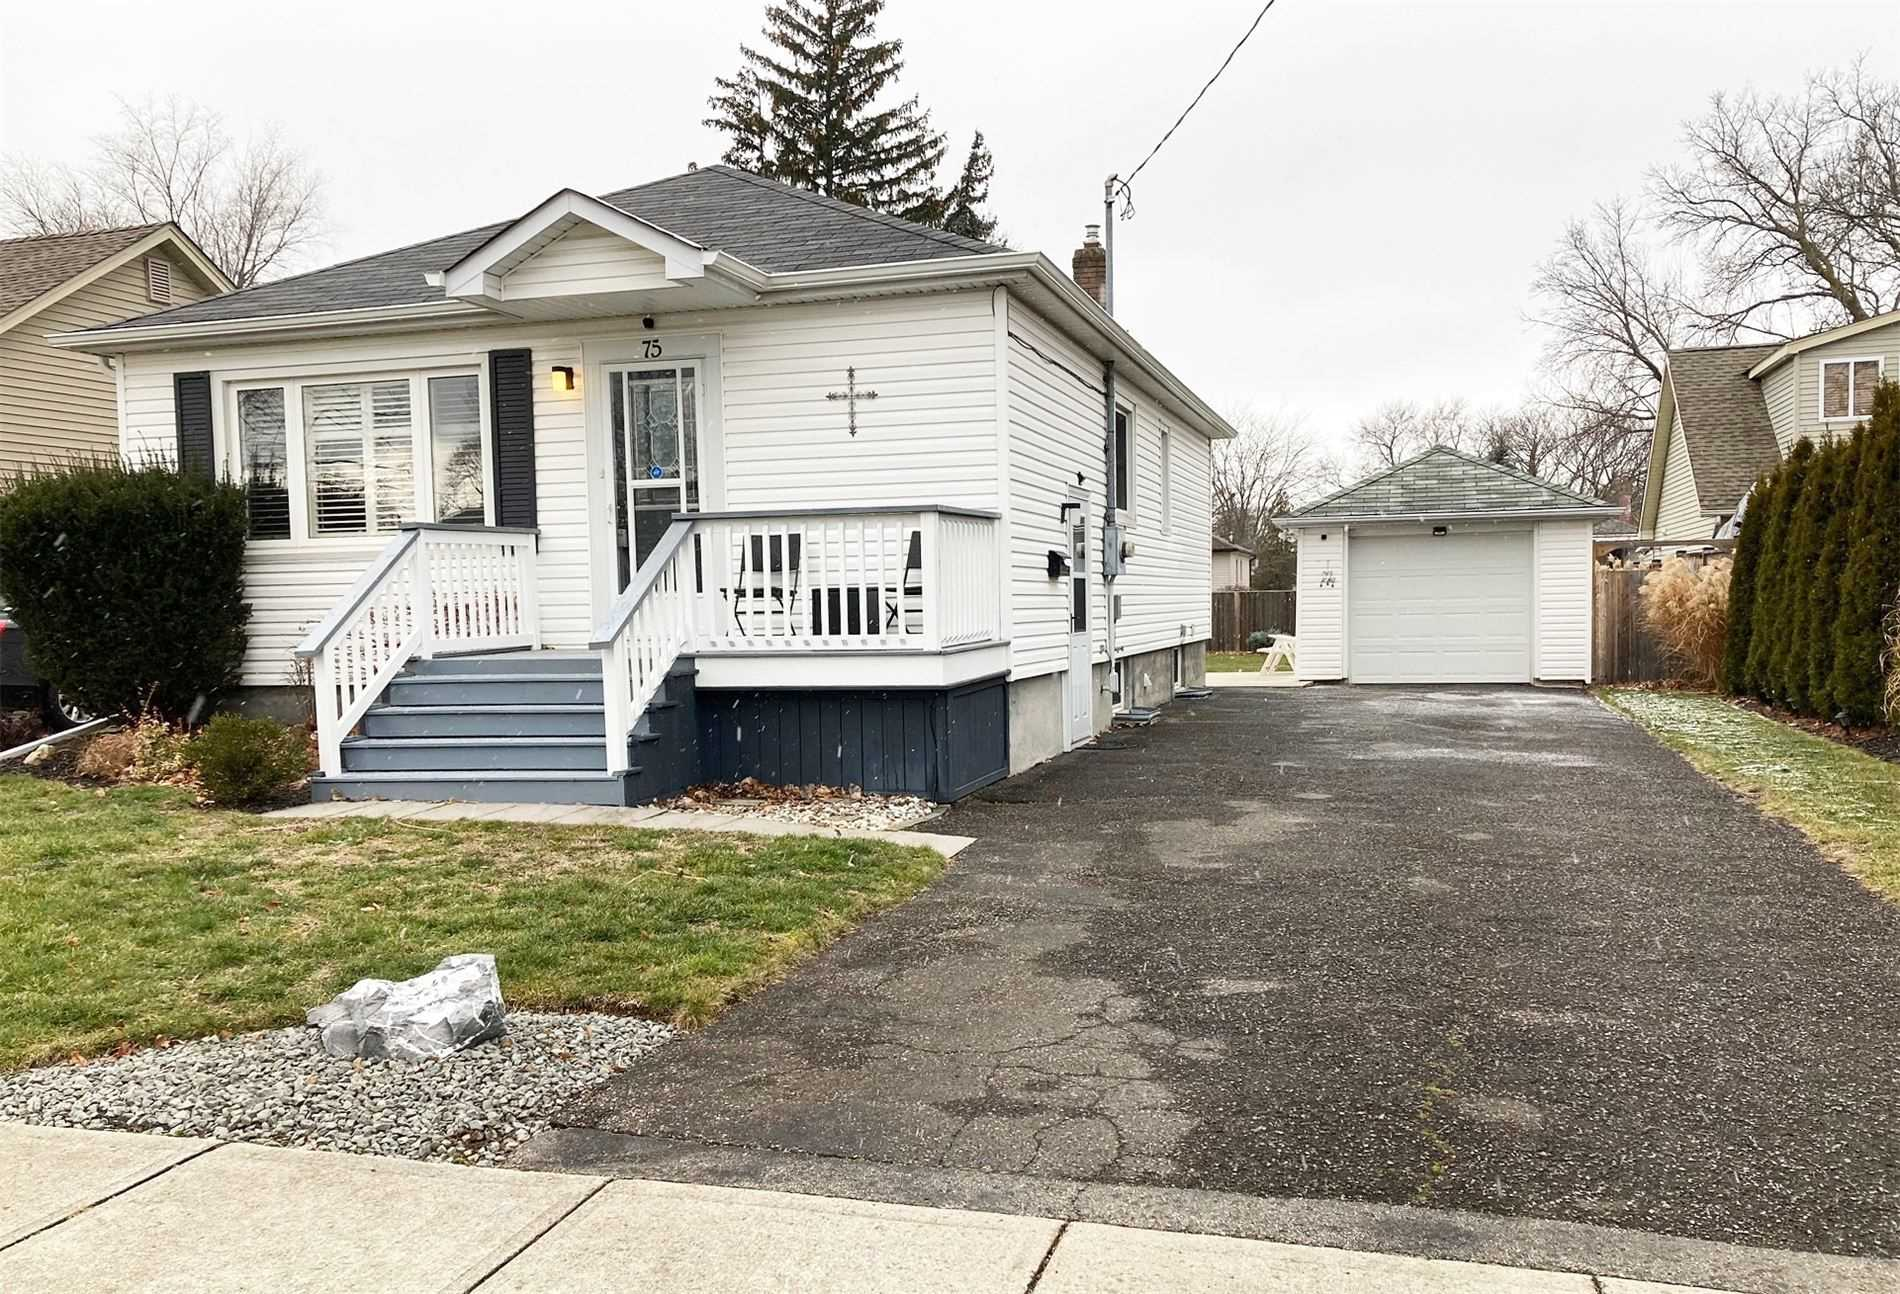 pictures of house for sale MLS: X5089310 located at 75 Else St, St. Catharines L2N2C4